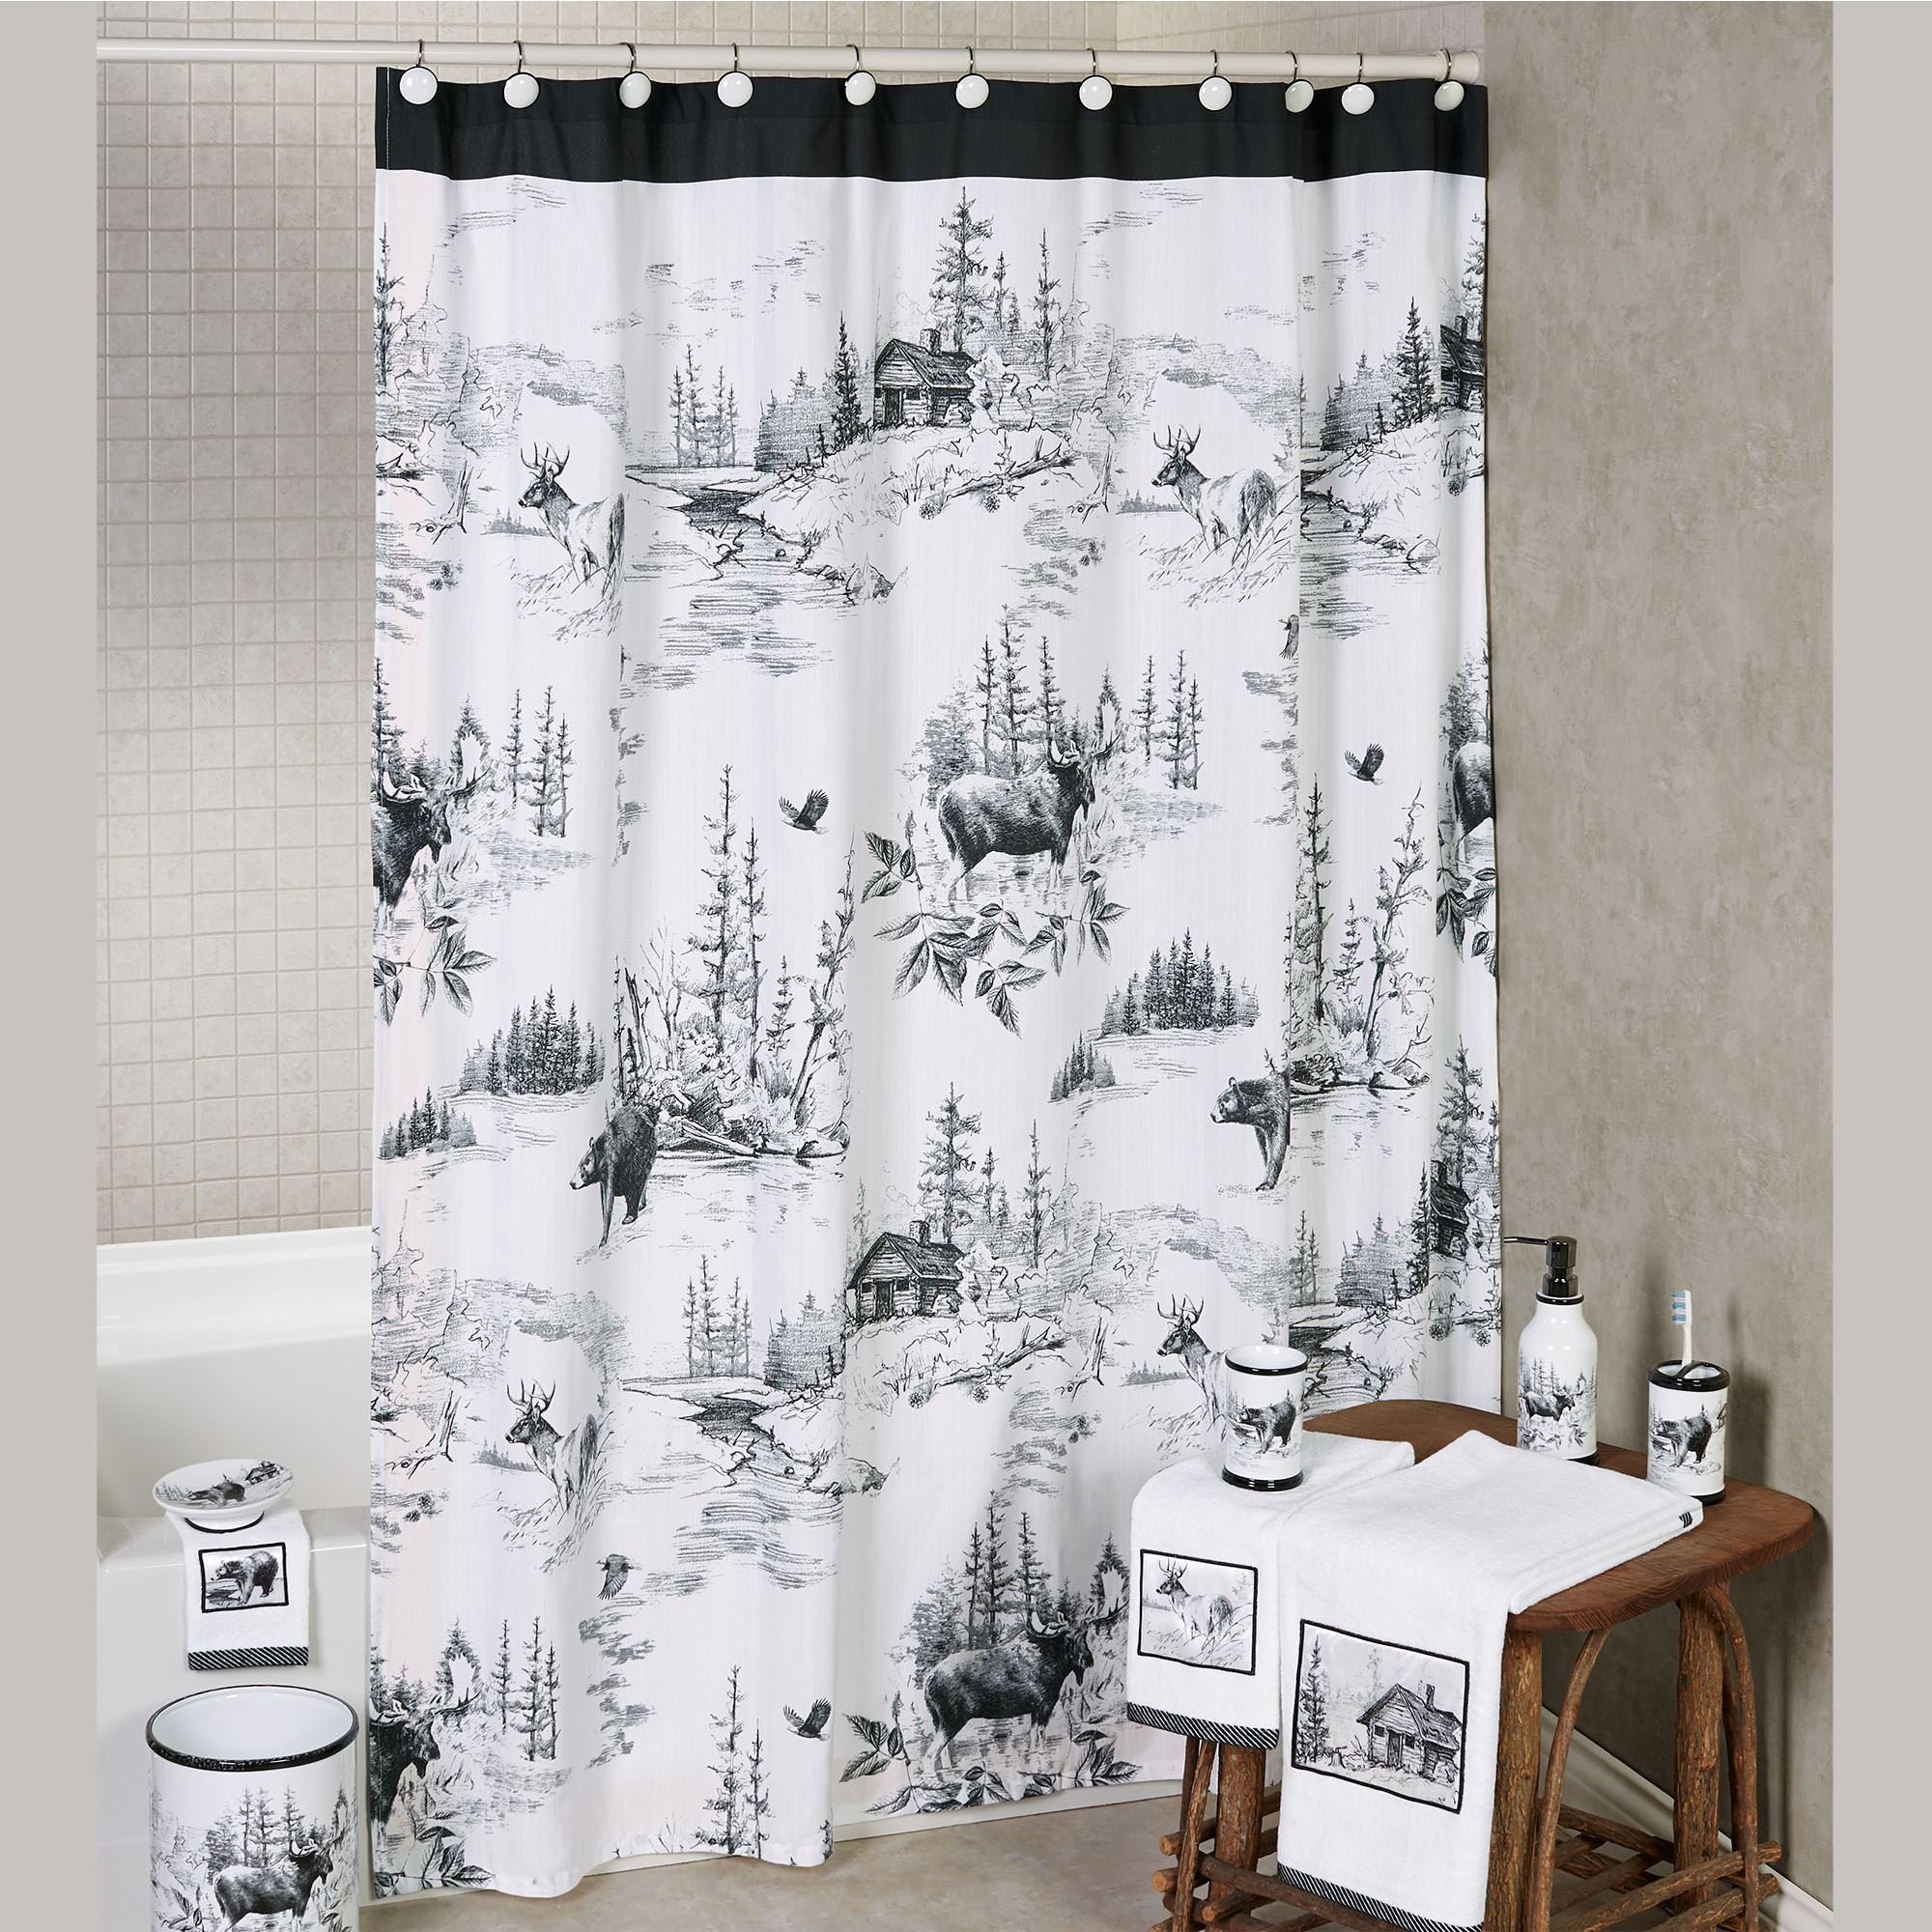 Sketches Rustic Cabin Wildlife Shower Curtain By Hautman Brothers